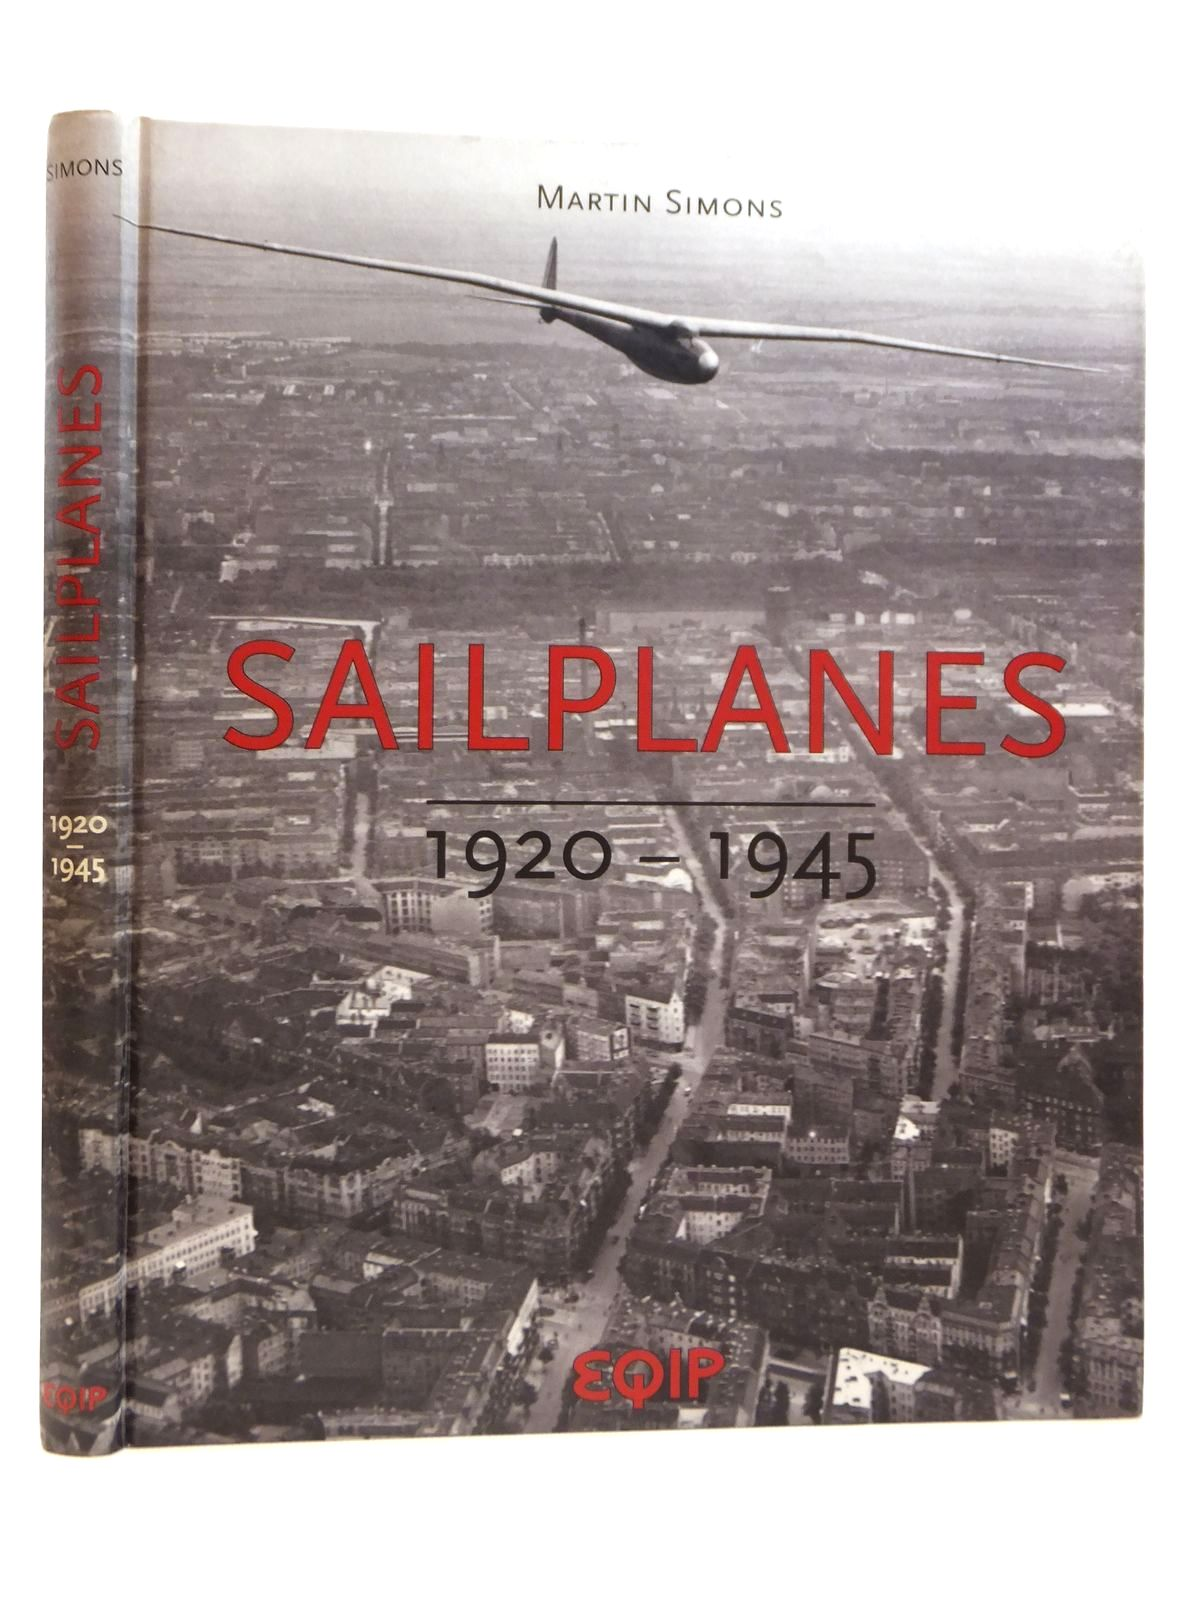 Photo of SAILPLANES 1920 - 1945 written by Simons, Martin published by Equip (STOCK CODE: 2121726)  for sale by Stella & Rose's Books